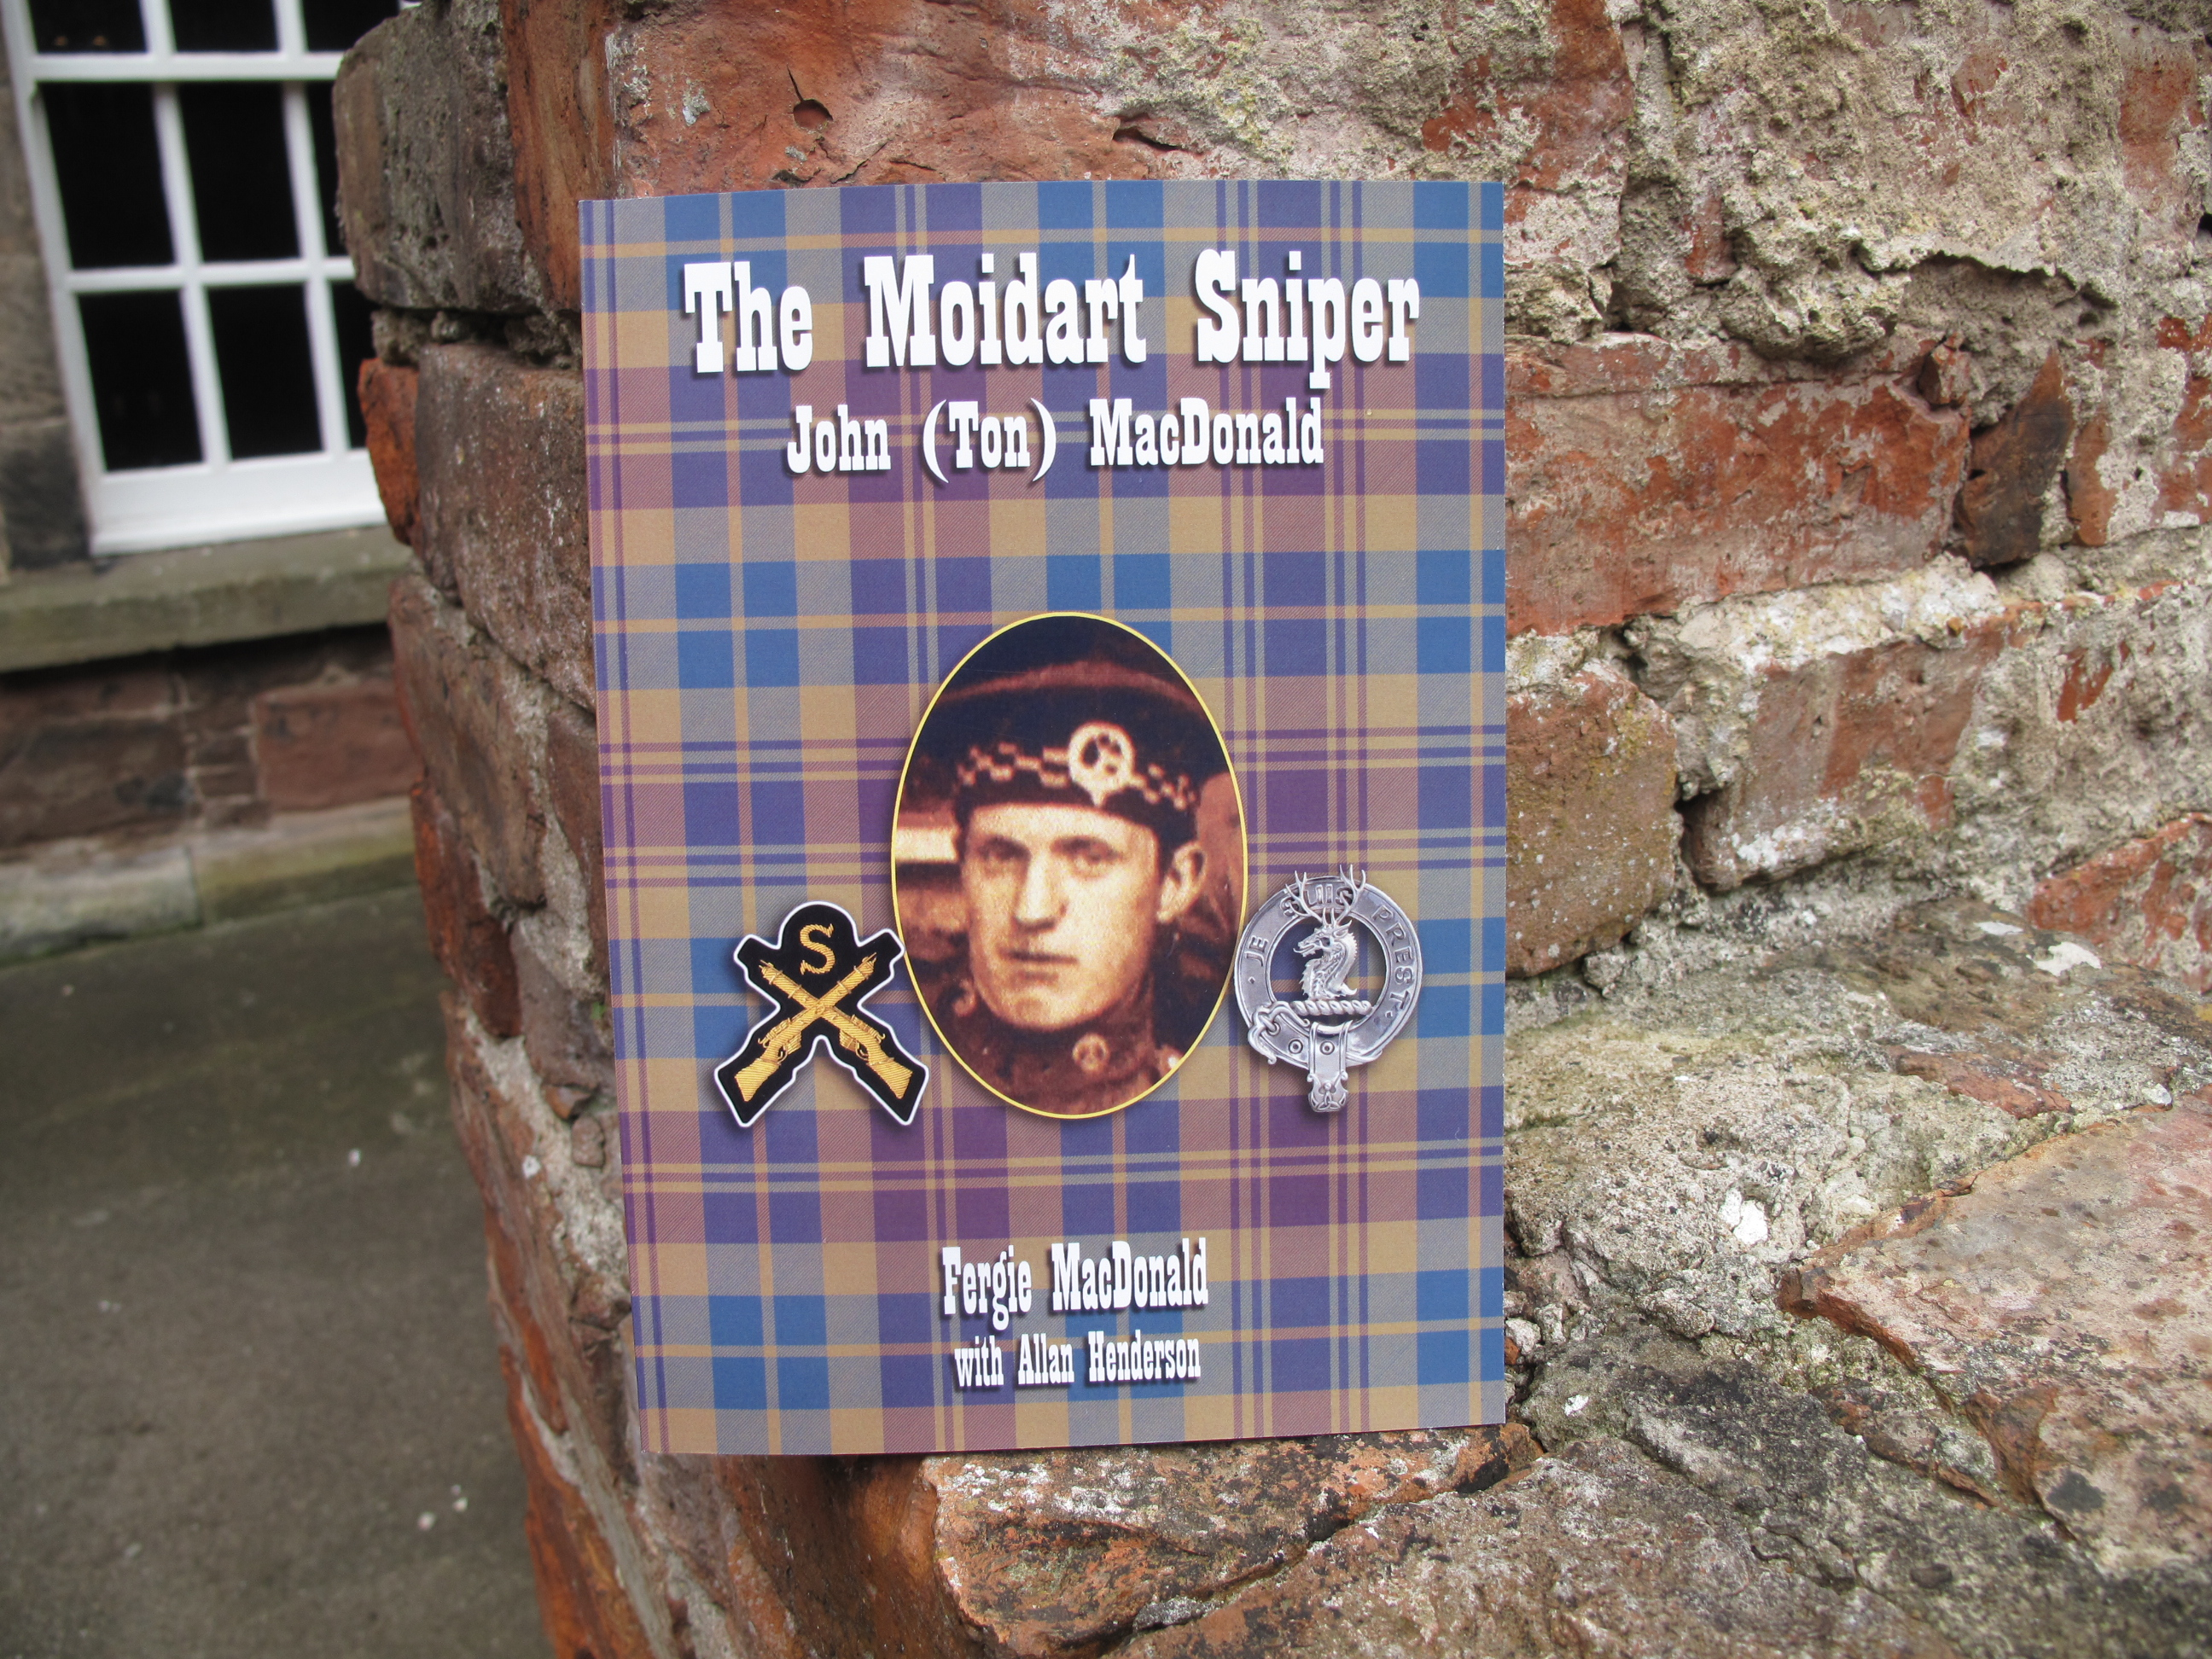 Book - The Moidart Sniper